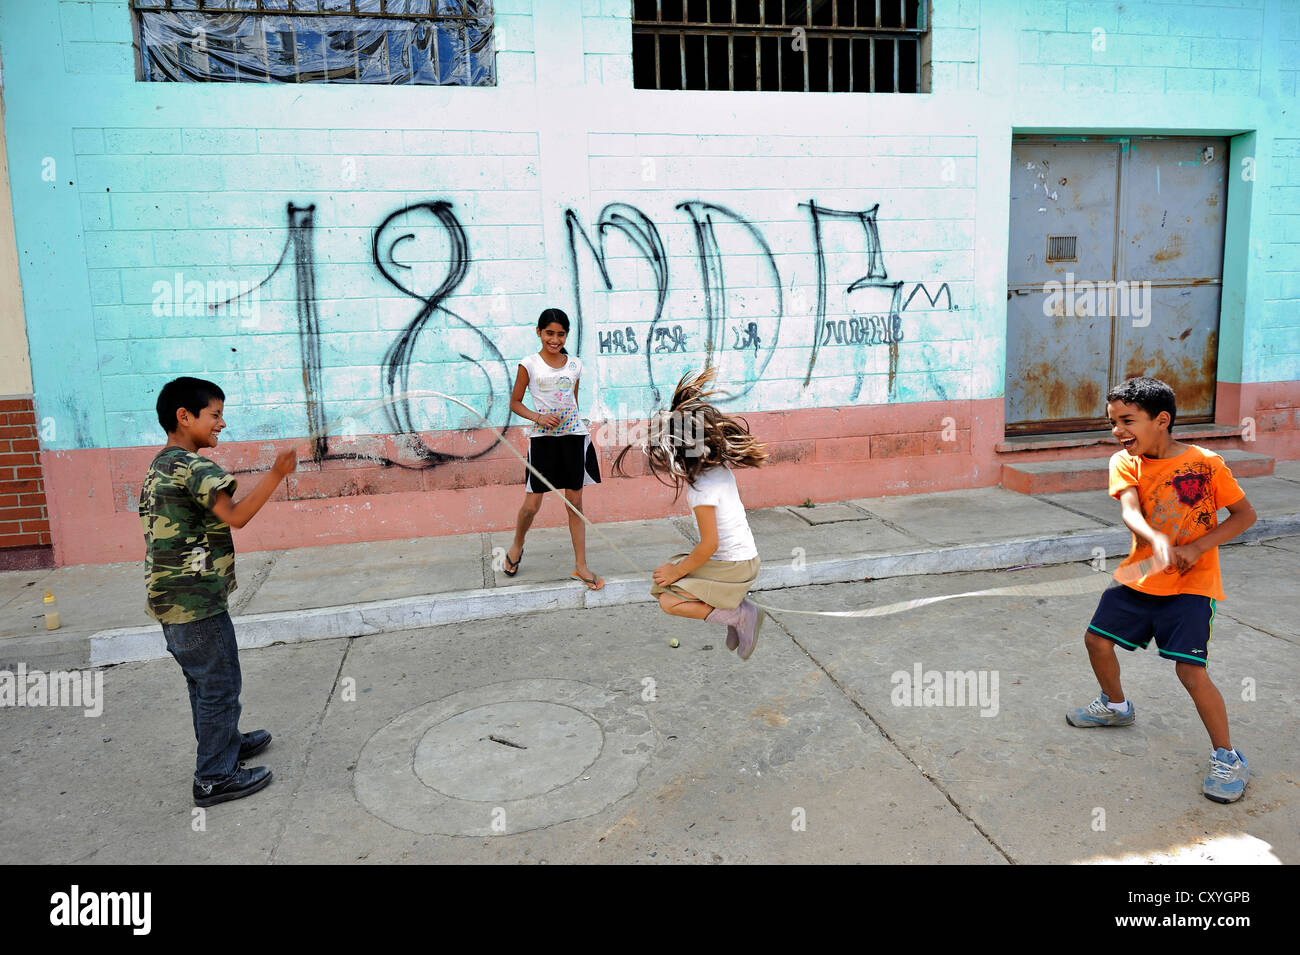 Children playing in front of a wall with graffiti of the criminal Mara 18 gang of youths, Lomas de Santa Faz slum - Stock Image